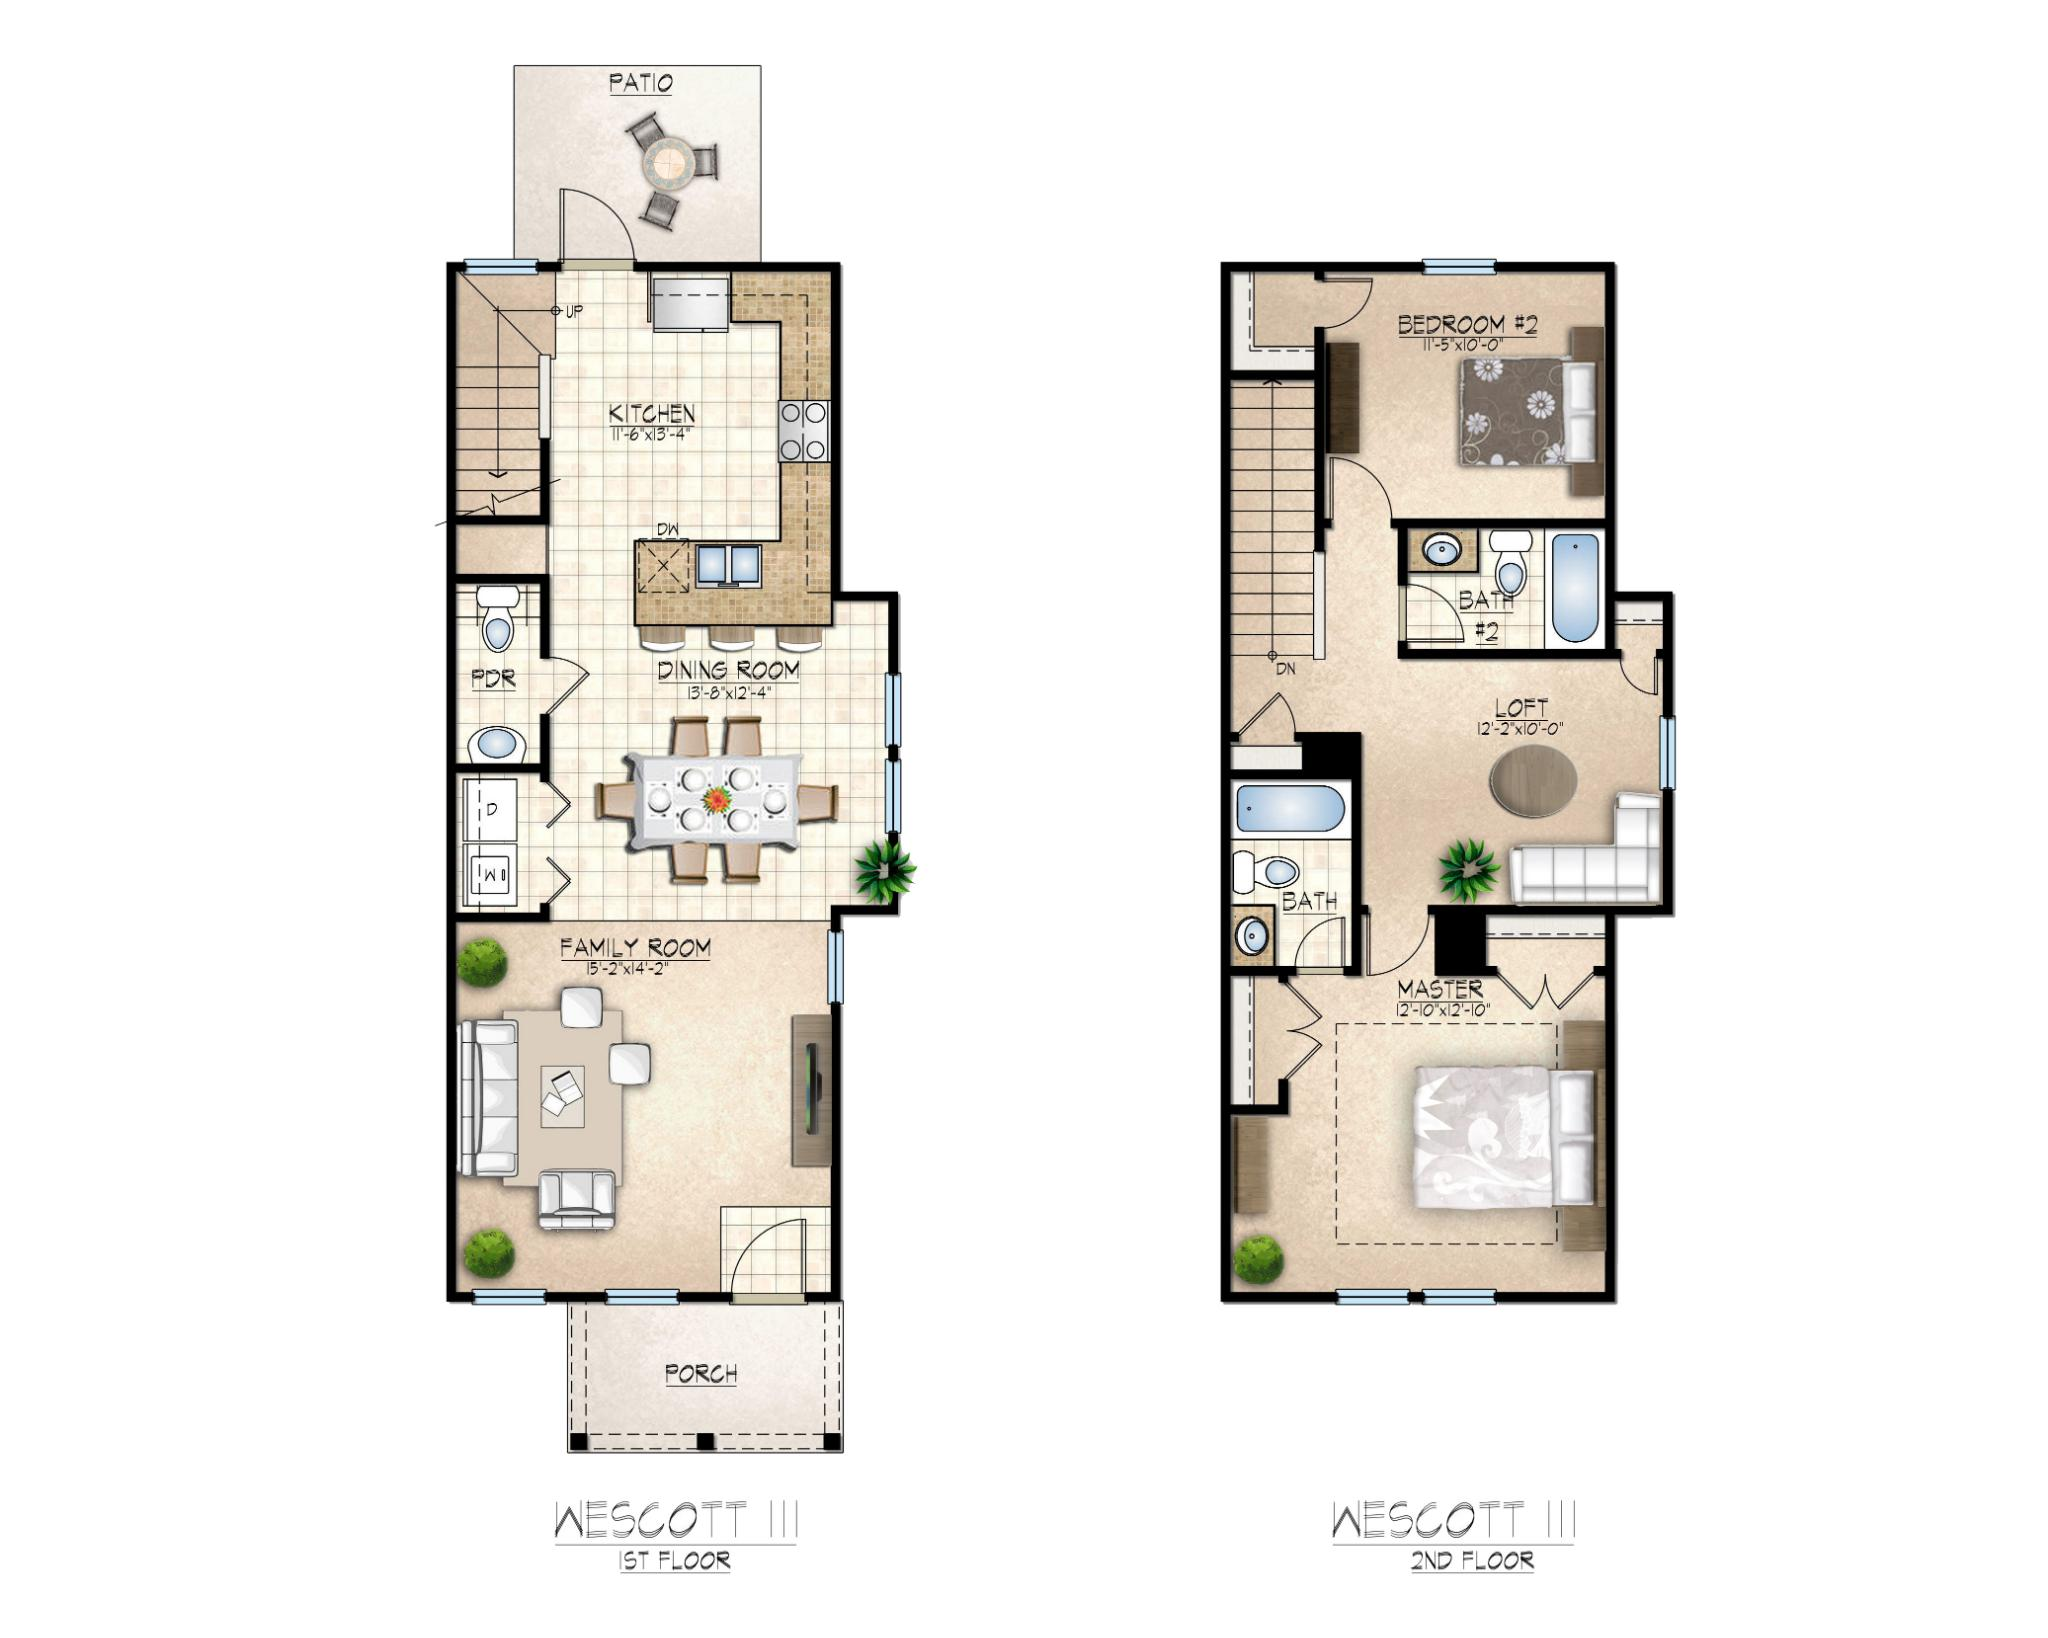 Wescott III Floor Plan